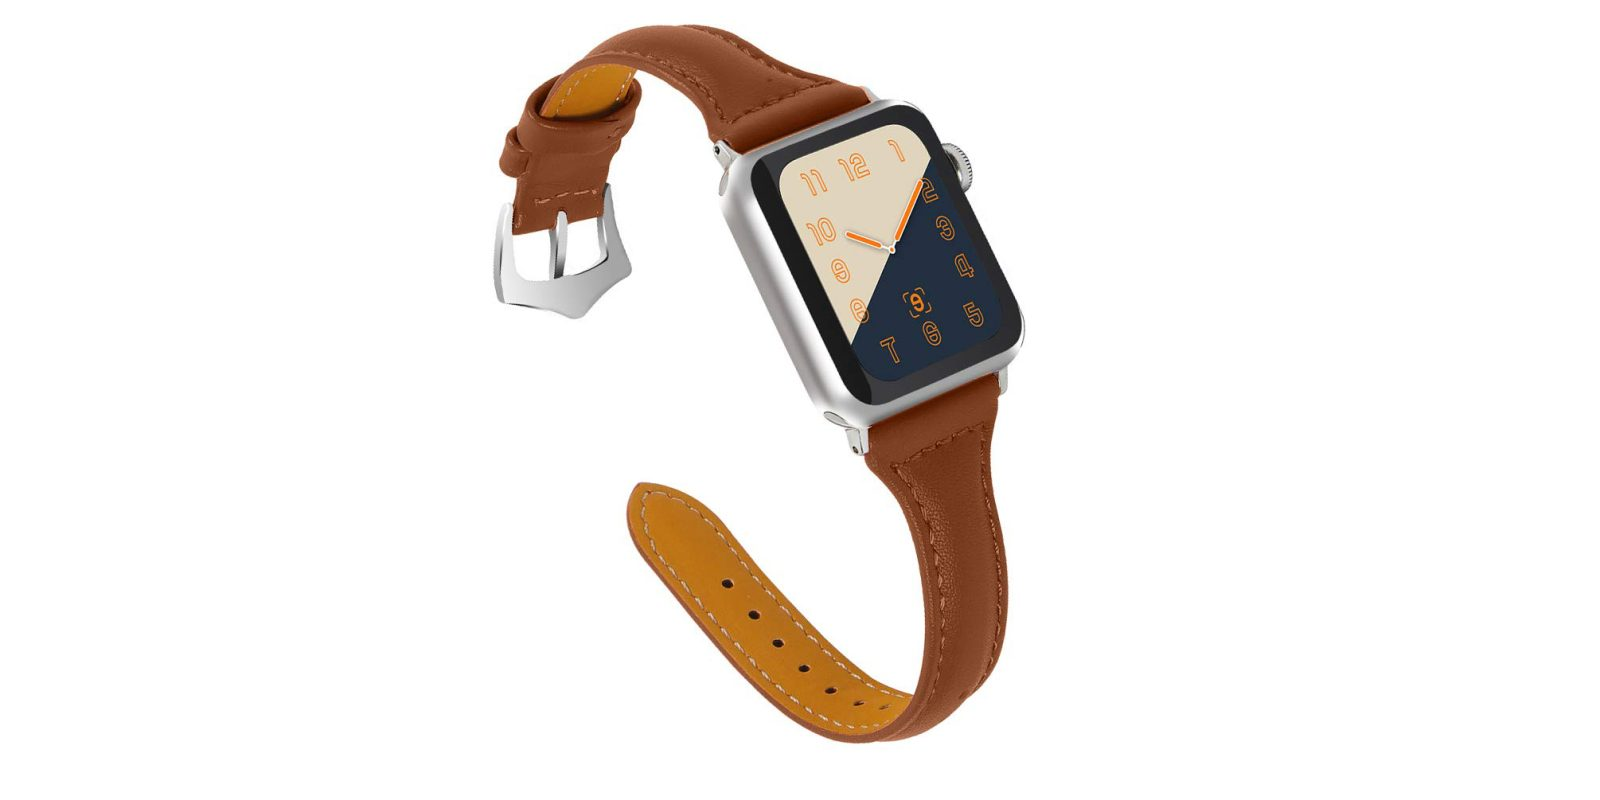 Put an Hermès-style Apple Watch Band on your wrist from $8.50